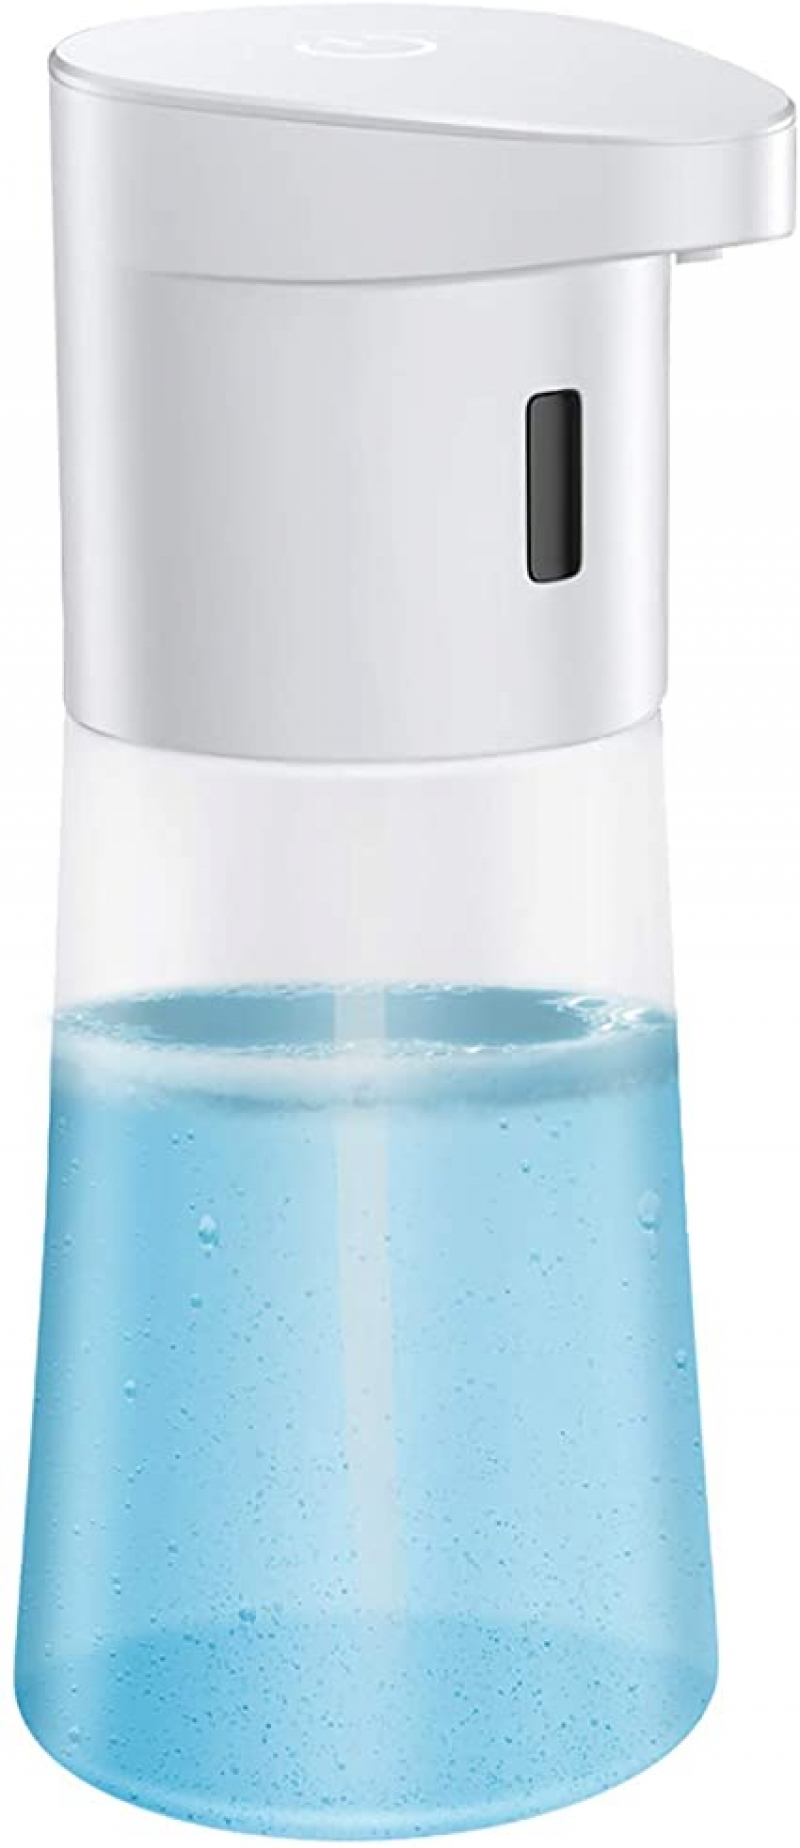 ihocon: Melcam 17oz/500ml Infrared Motion Sensor Hand Soap Dispenser 自動給皂器